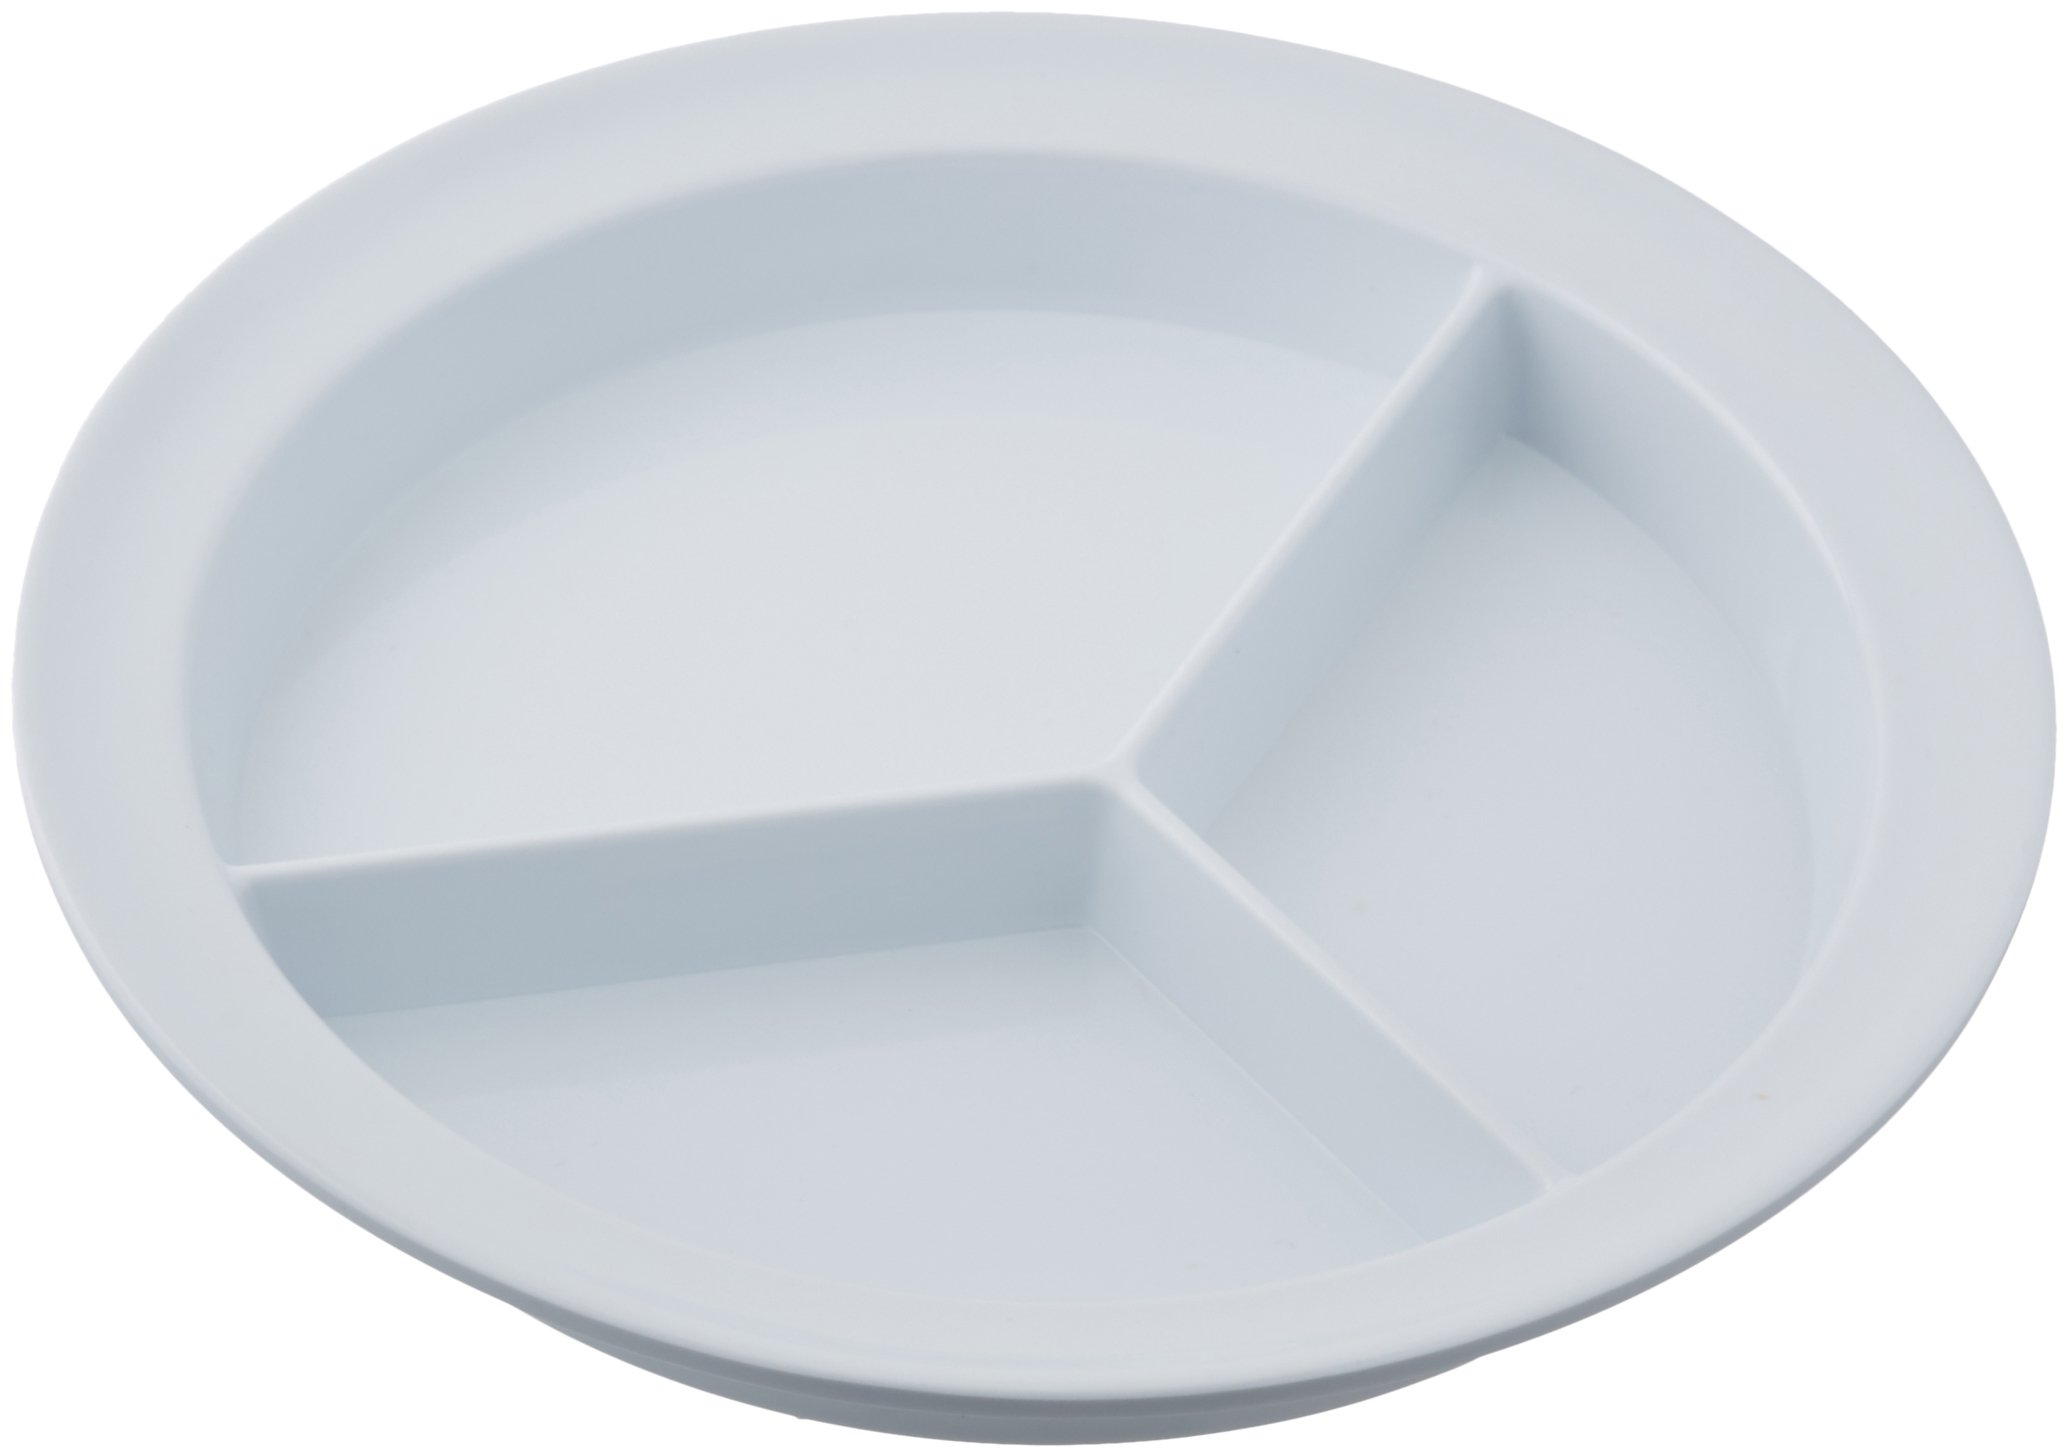 Sammons Preston Partitioned Scoop Dish, Melamine Plate with Dividers for Kids, Elderly, and Disabled, Divided Sections for Portion Control and Easy Scooping Walls for Limited Mobility by Sammons Preston